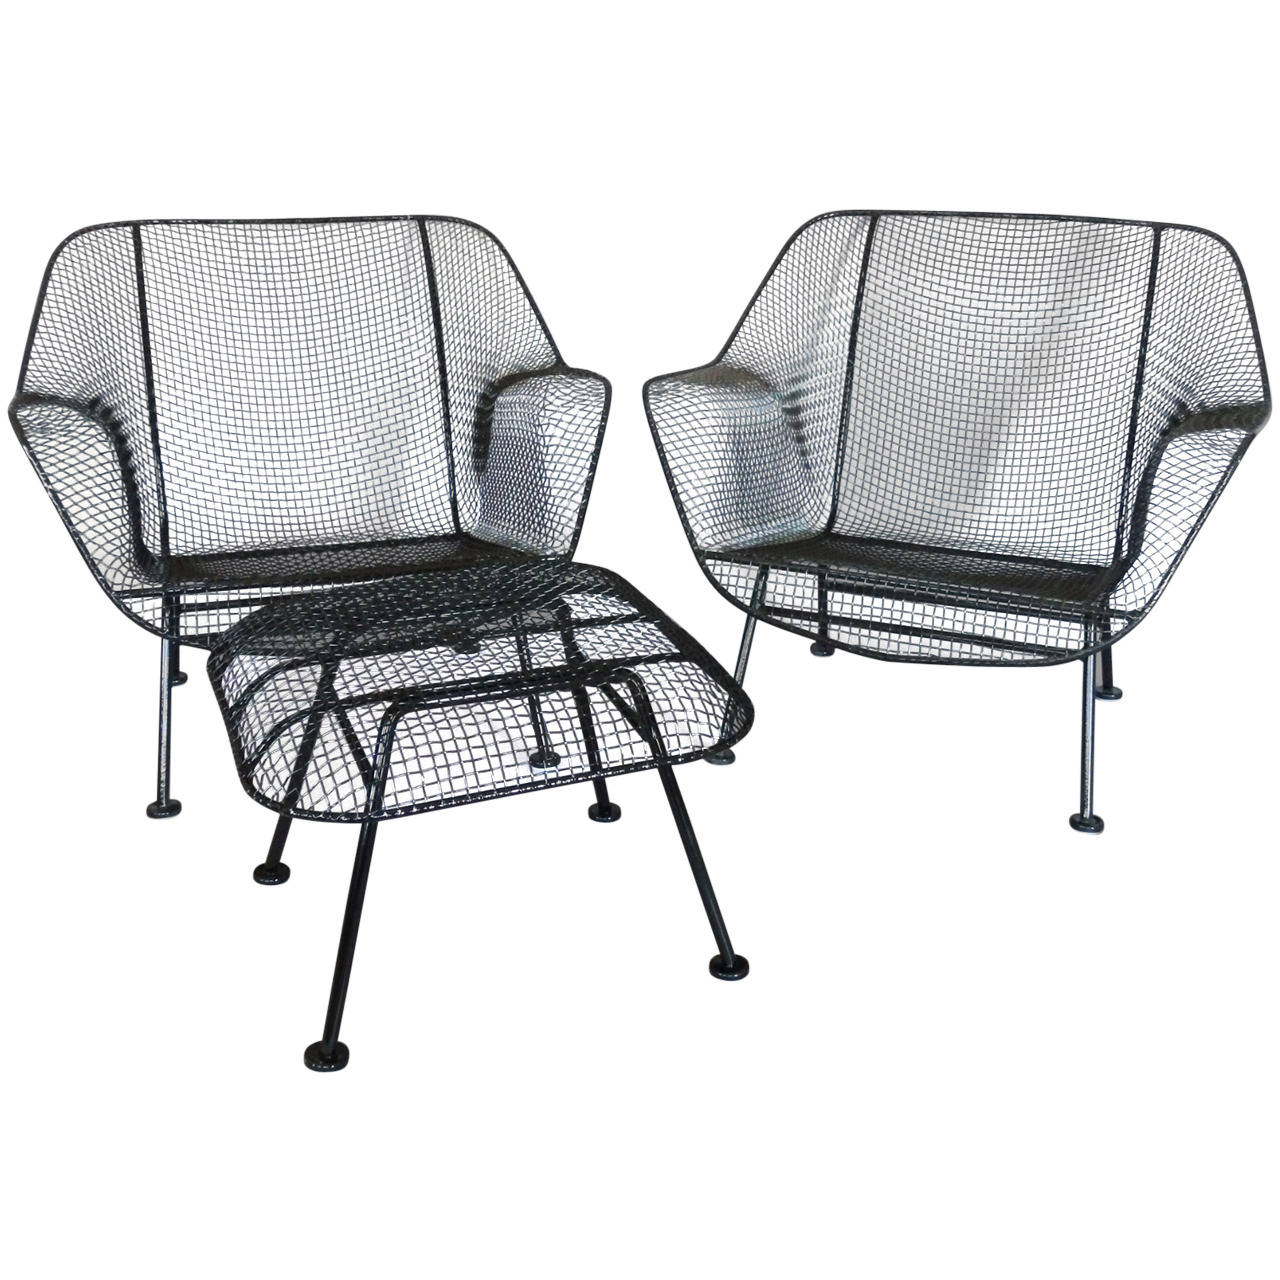 Pair of woodard wrought iron with mesh lounge chairs for for Wrought iron furniture